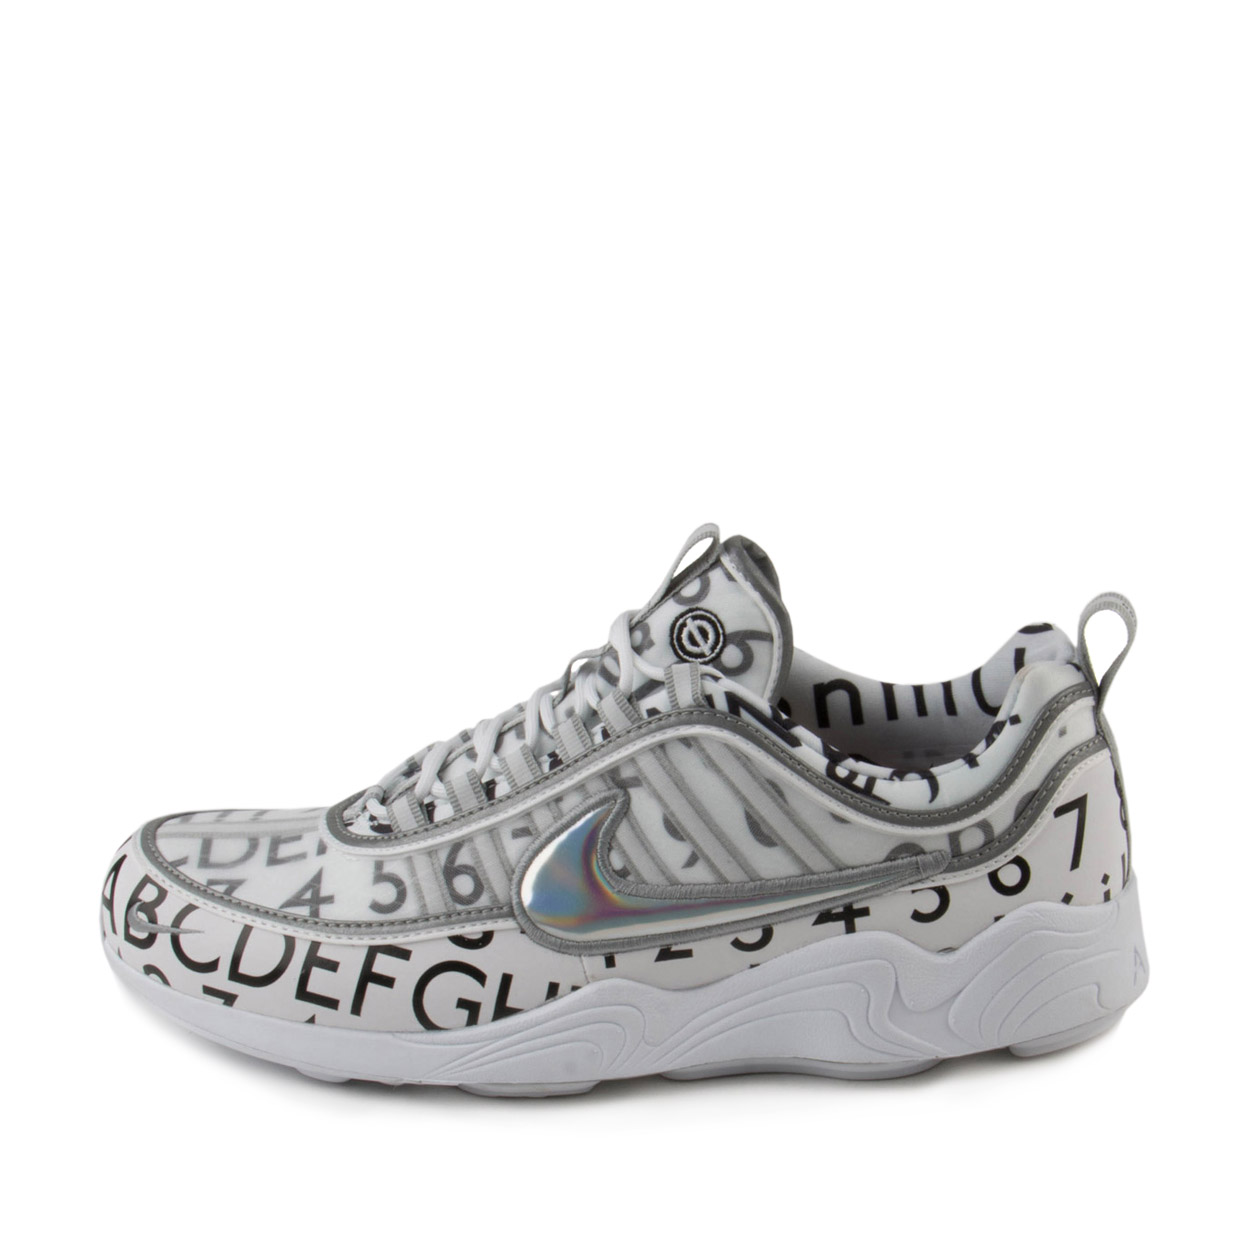 Nike - Nike X Roundel Mens Air Zoom Spiridon  16 GPX White Multi-Color  904336-100 - Walmart.com 794636d0c